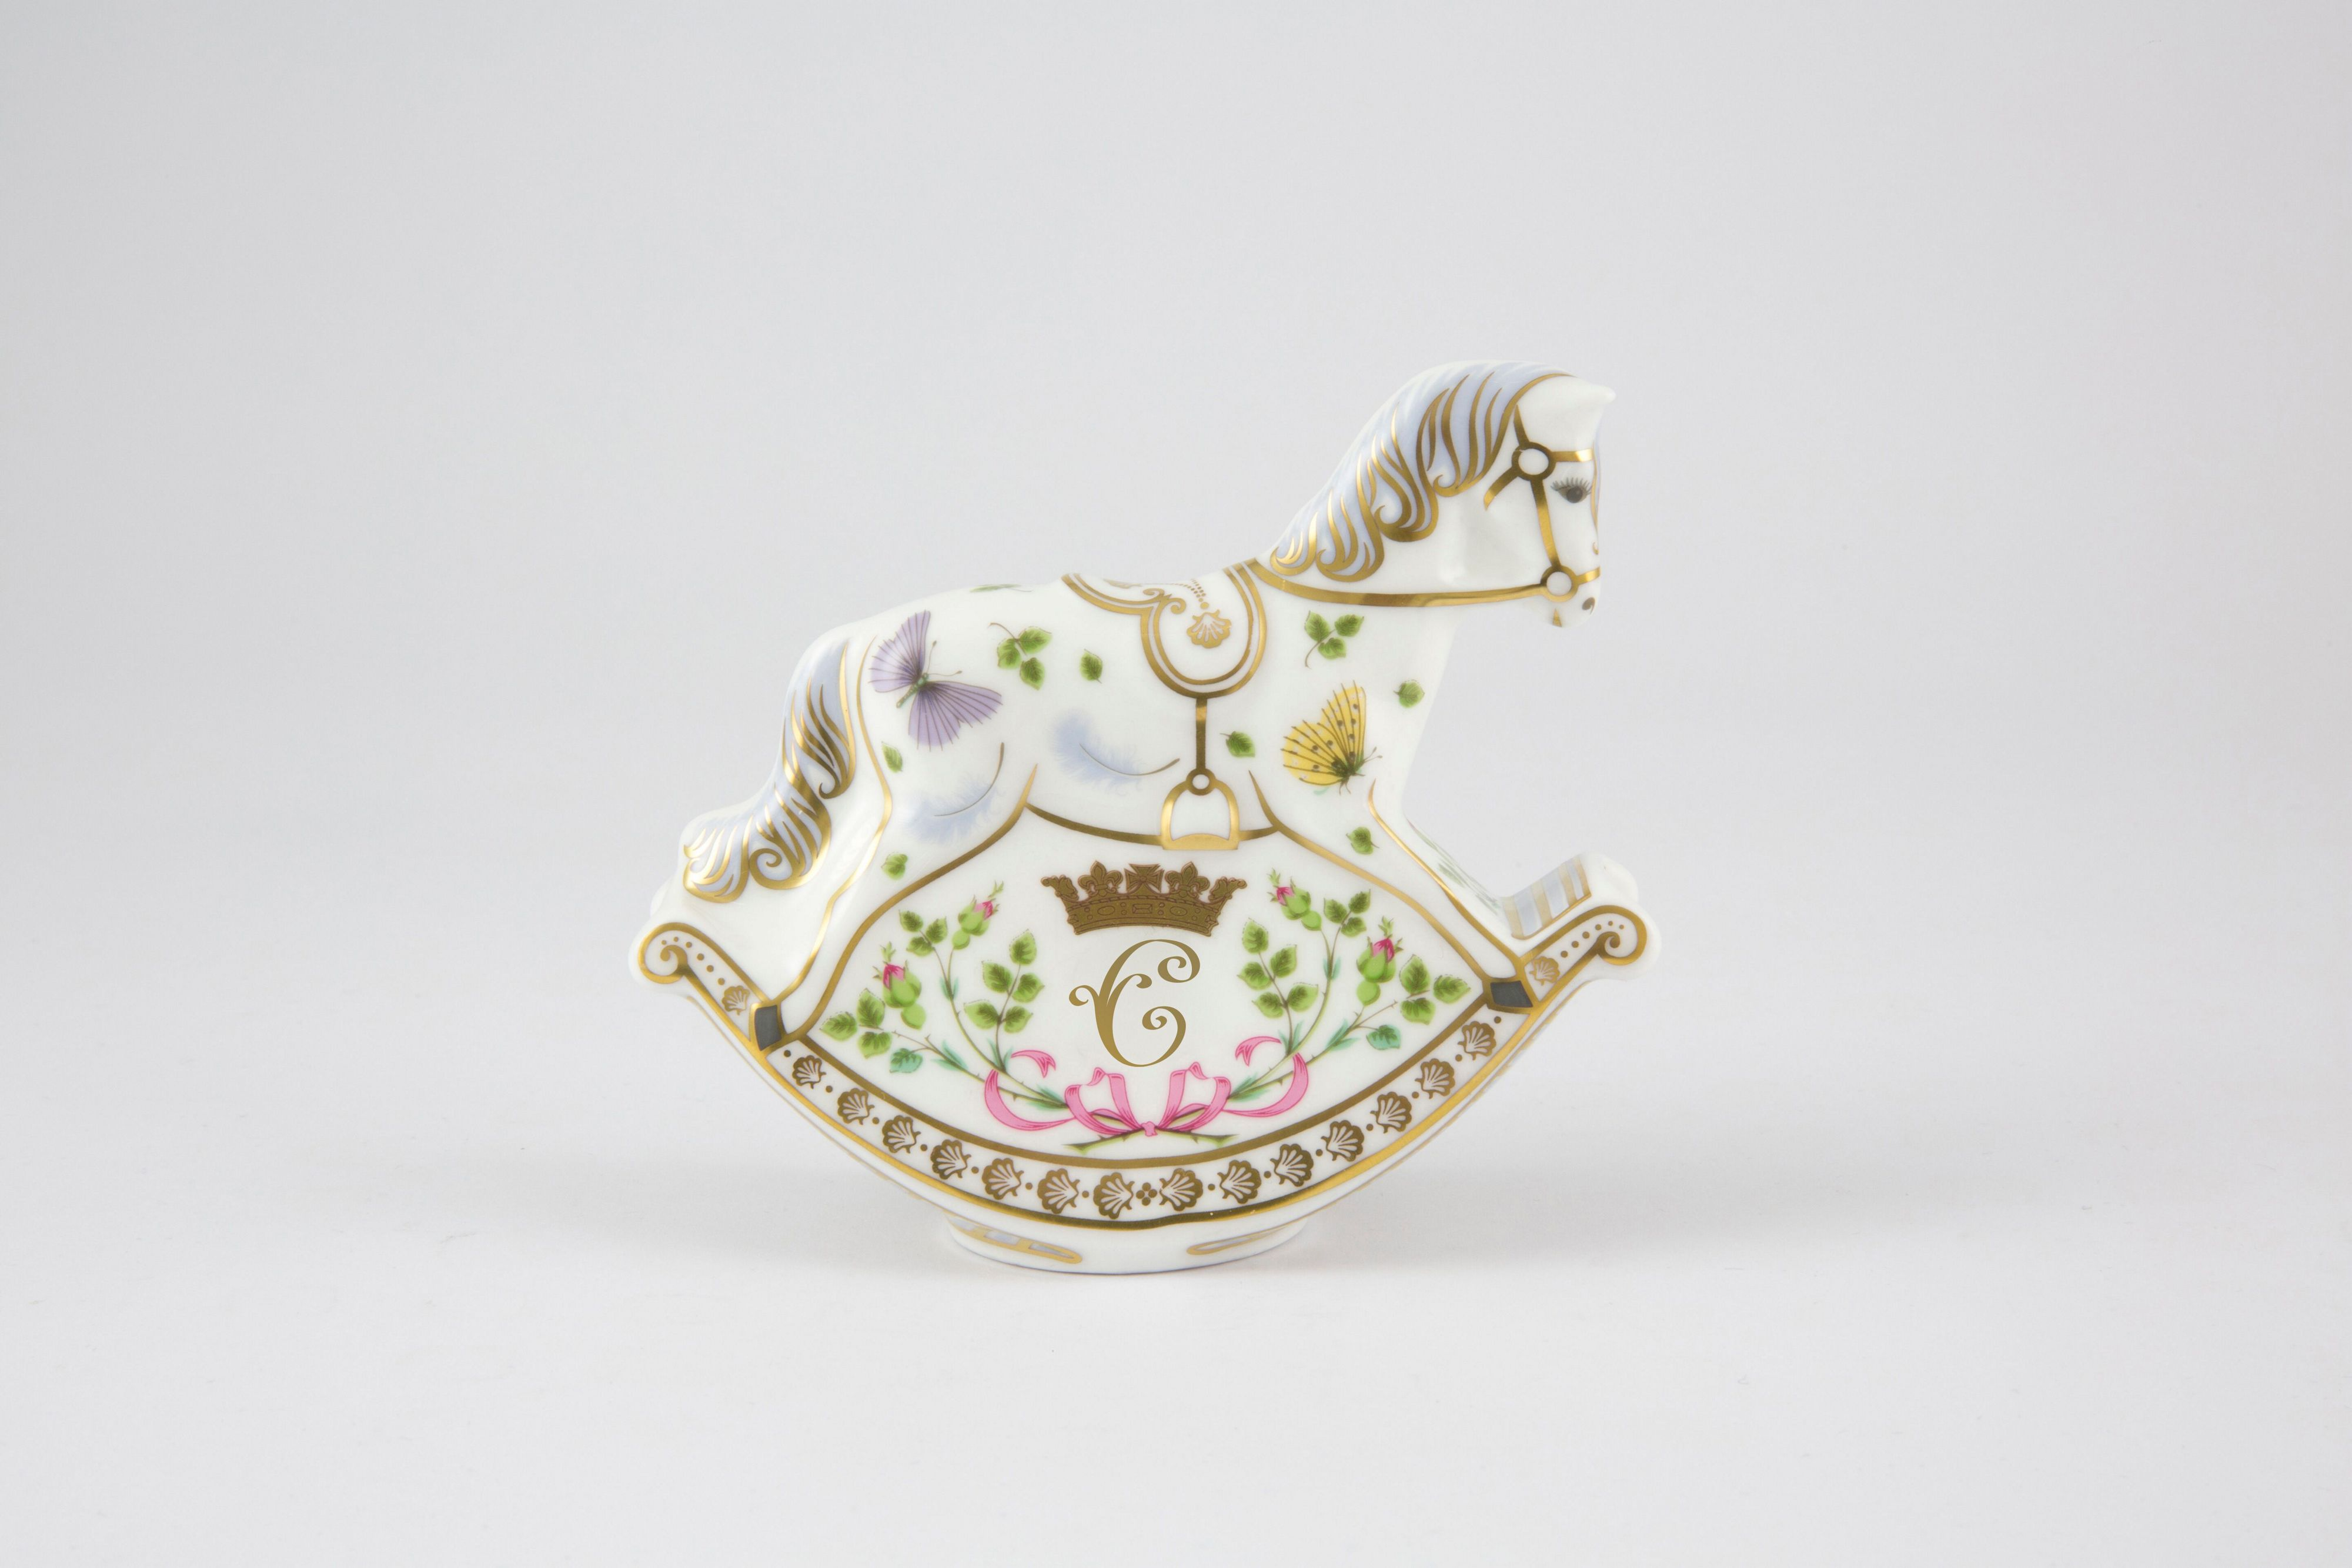 Royal Crown Derby Princess Charlotte rocking horse ornament